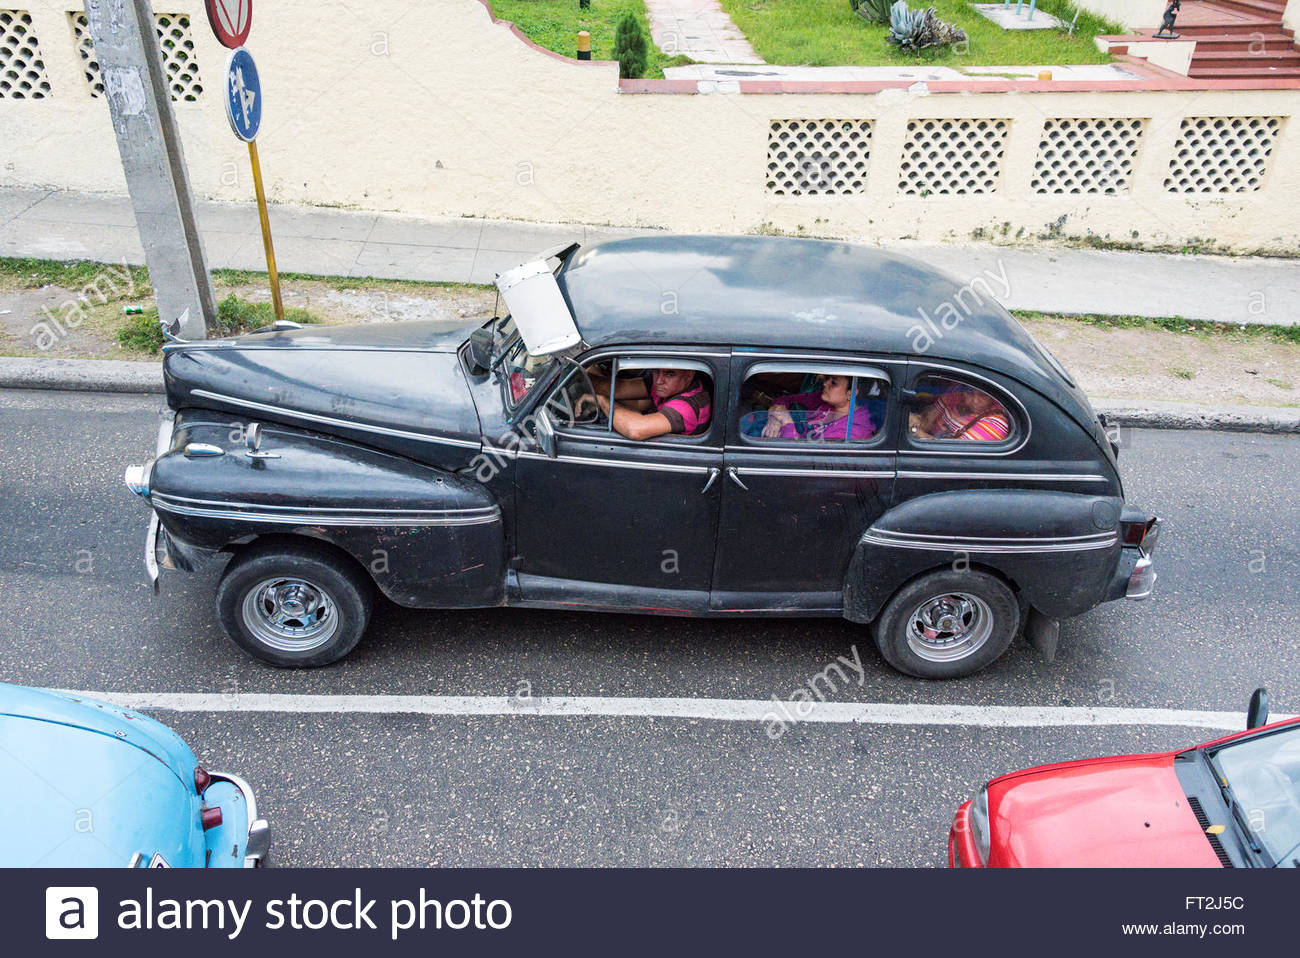 Vintage Ameican taxi cab carrying tourists on the back seat - Stock Image